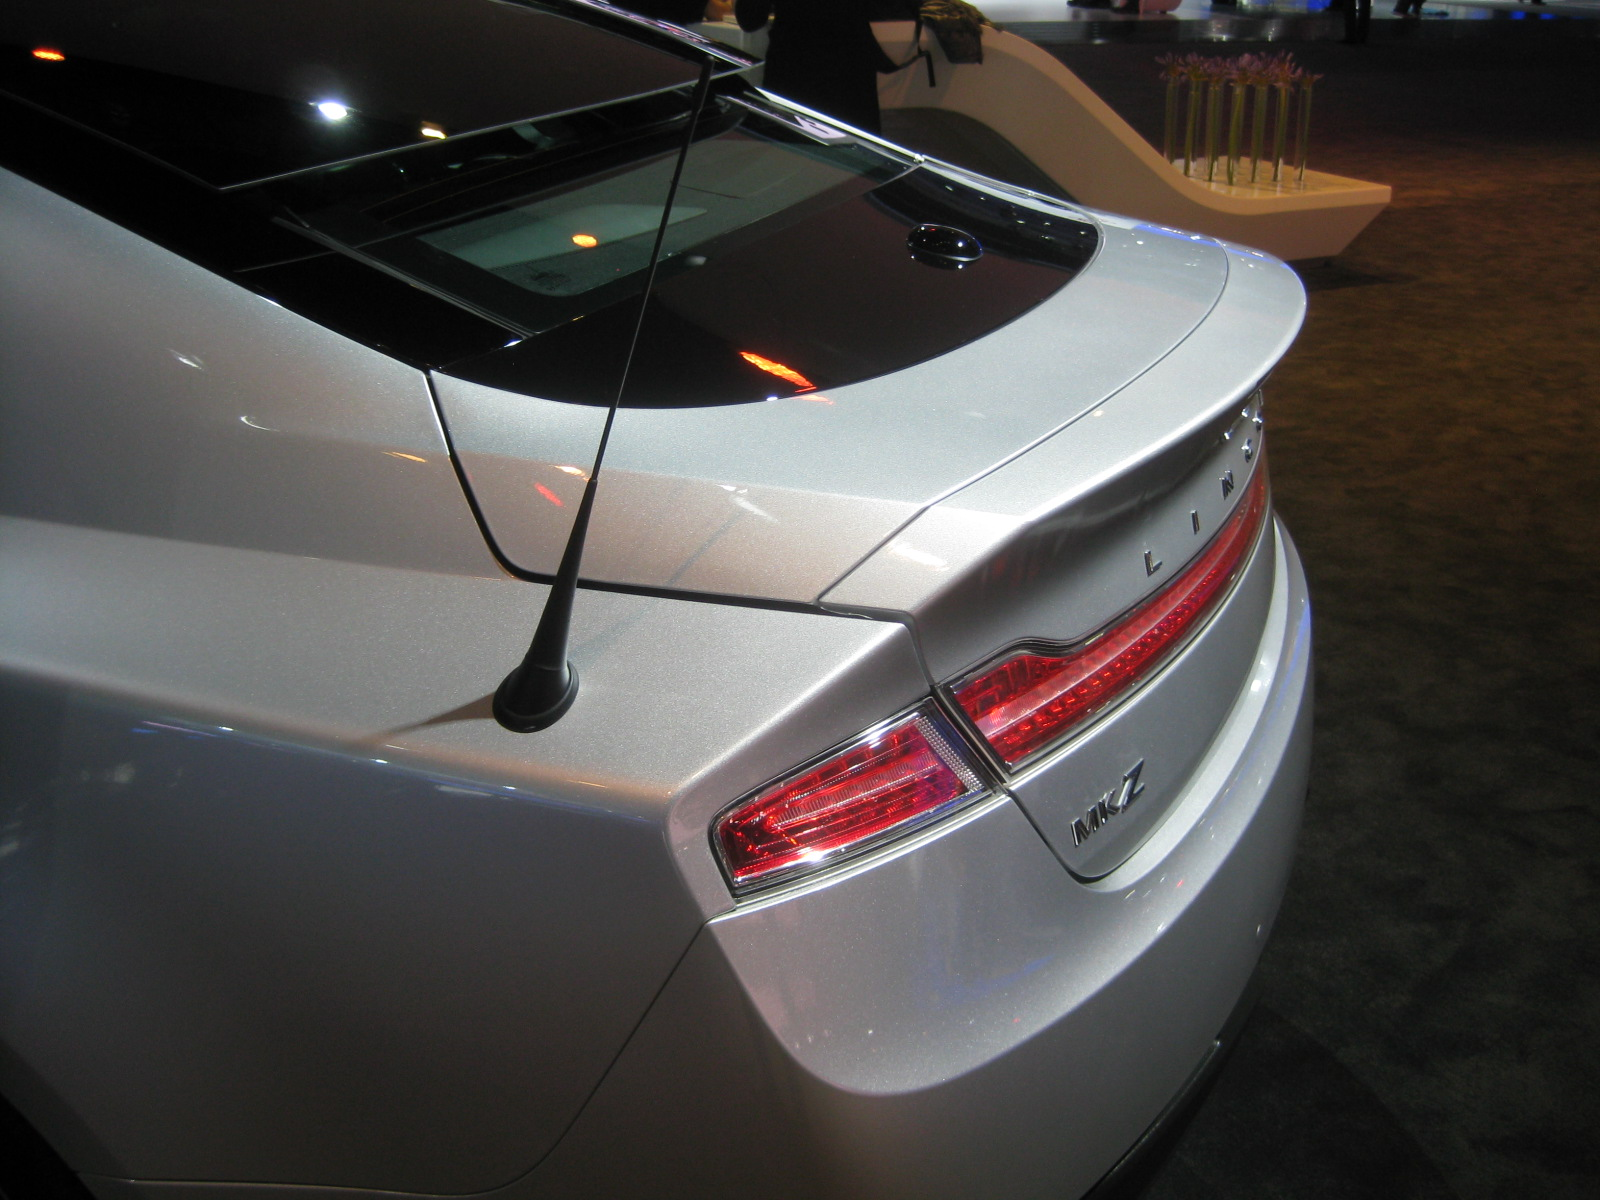 Lincoln 2013 Mkz Rear Detail Antenna Todd Biancos 2014 Ford Focus 2012 Los Angeles Auto Show Part 4